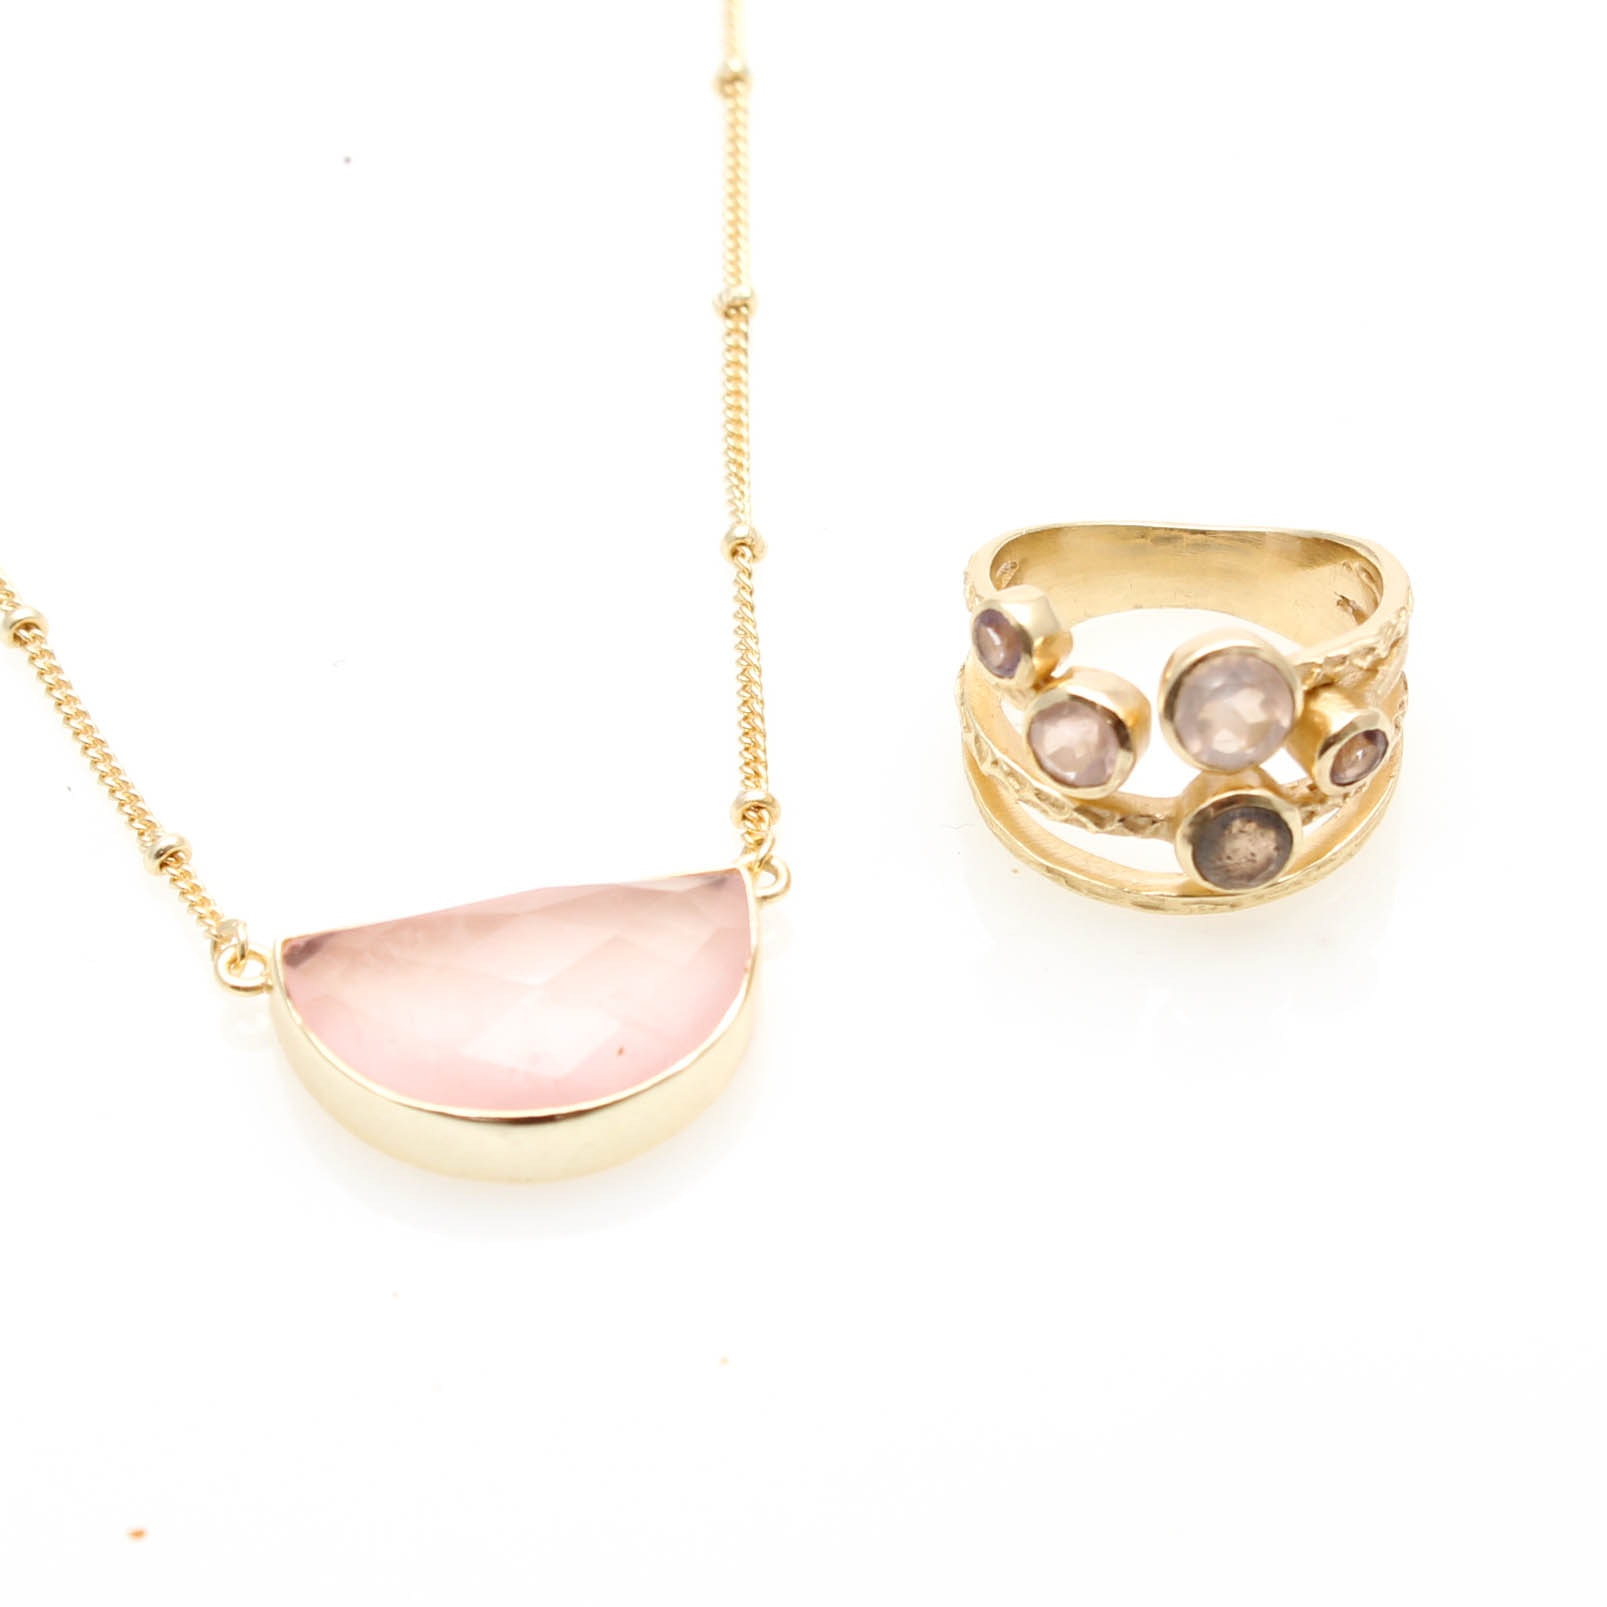 Gold Tone Rose Quartz and Labradorite Necklace and Ring